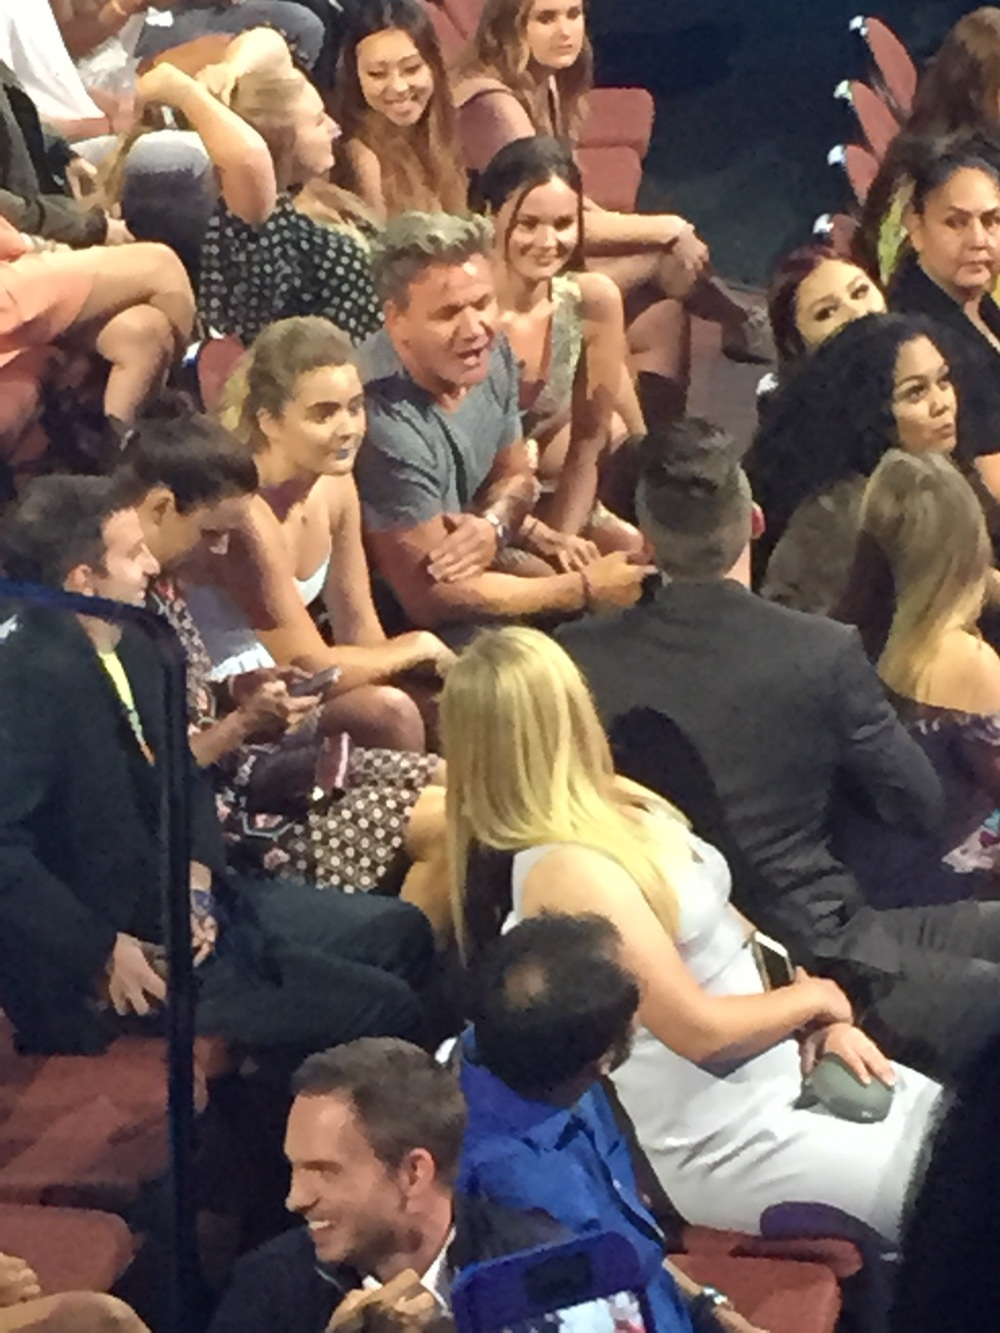 Gordon Ramsay and his three daughters chatting to Pretty Little Liars star Sasha Pieterse.